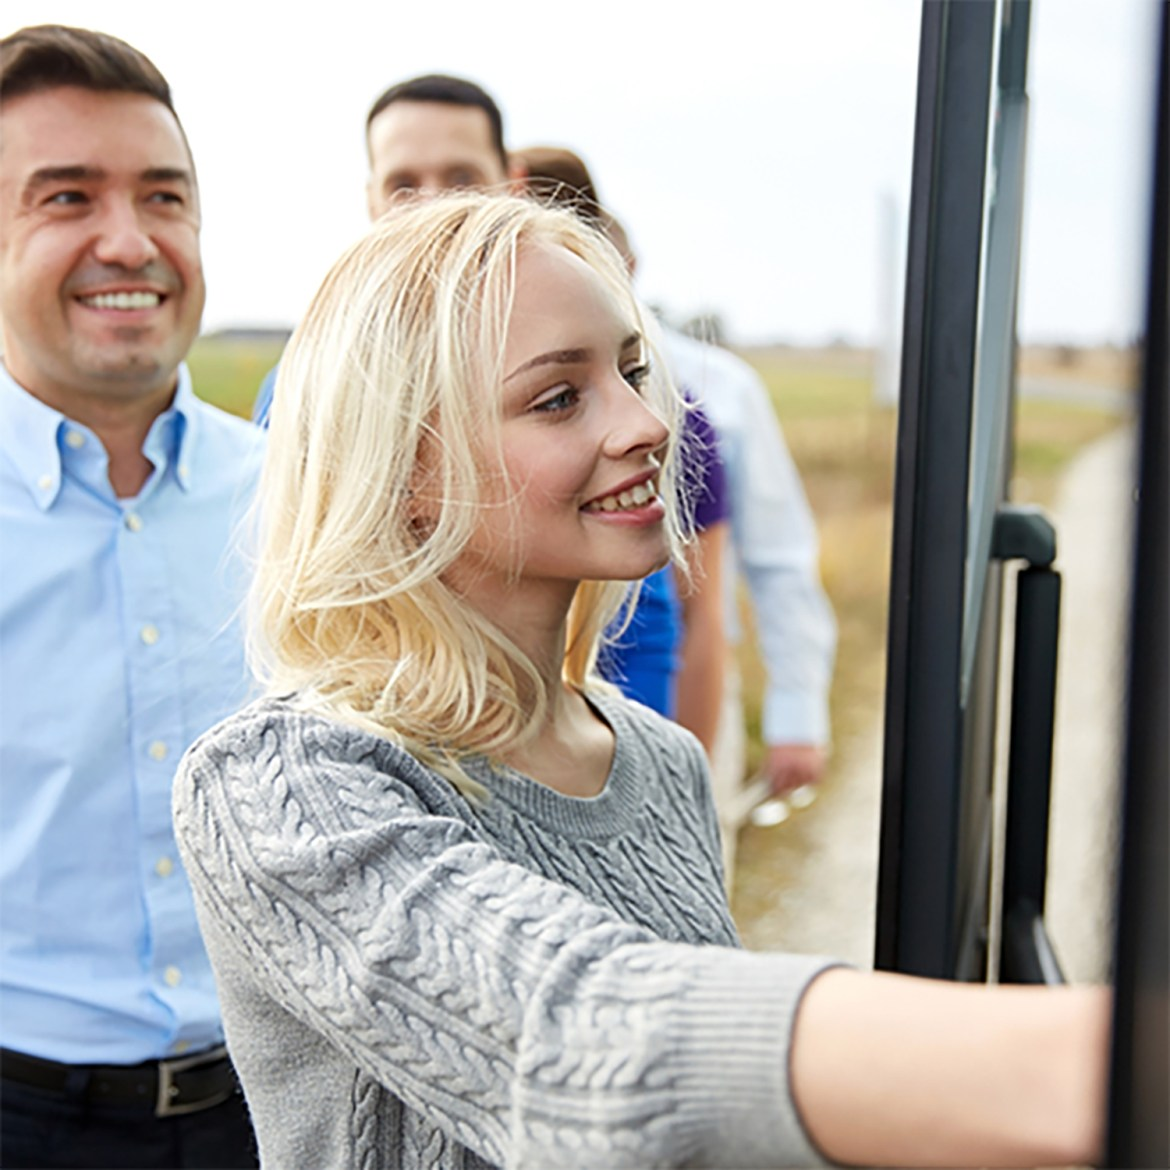 woman boarding a tour bus